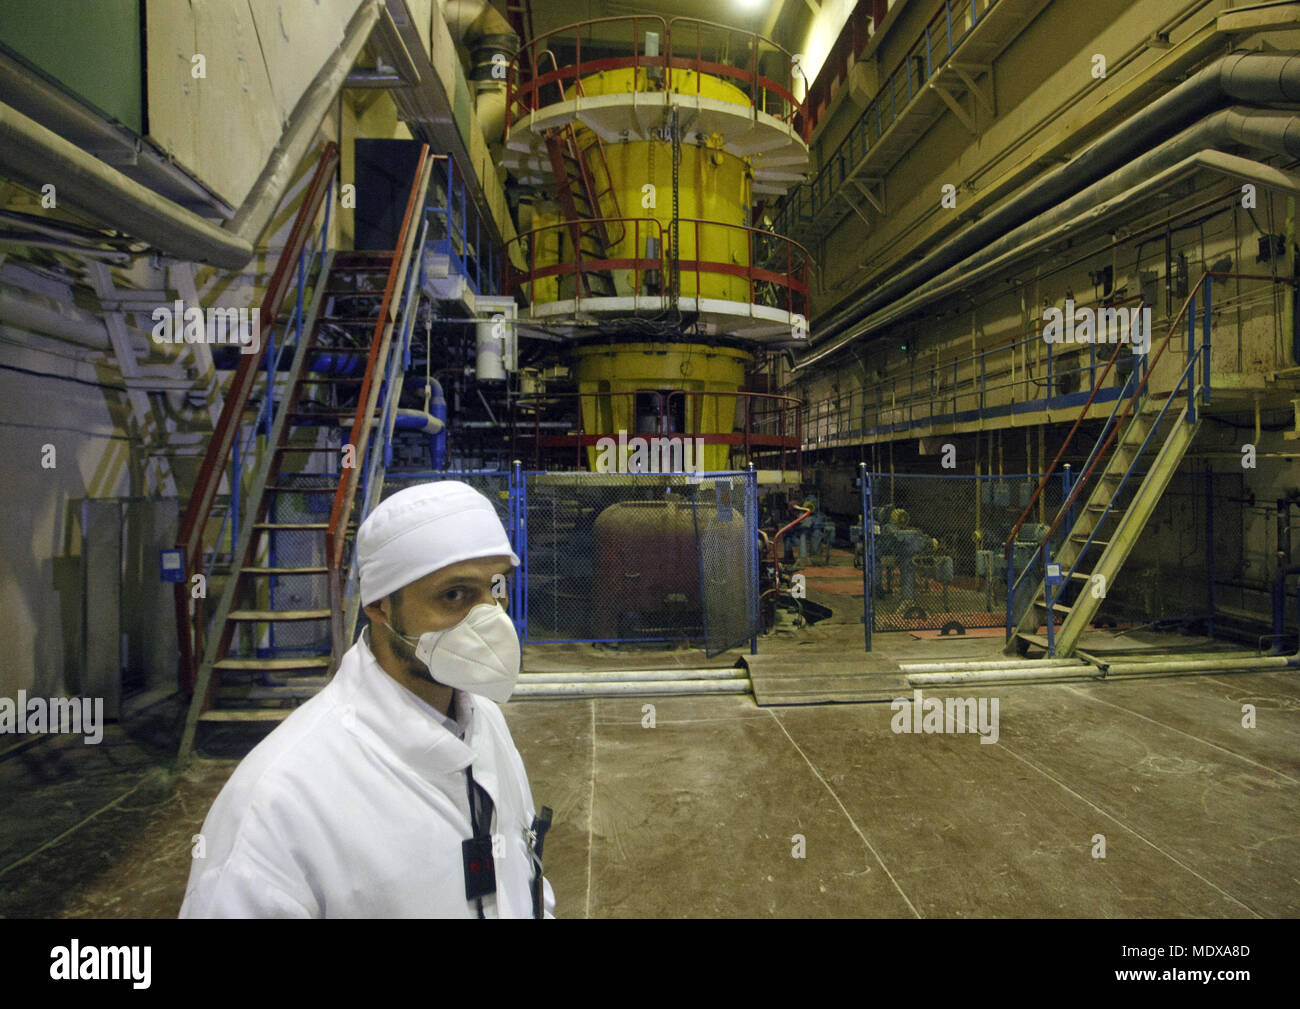 Nuclear Worker Stock Photos & Nuclear Worker Stock Images - Page 3